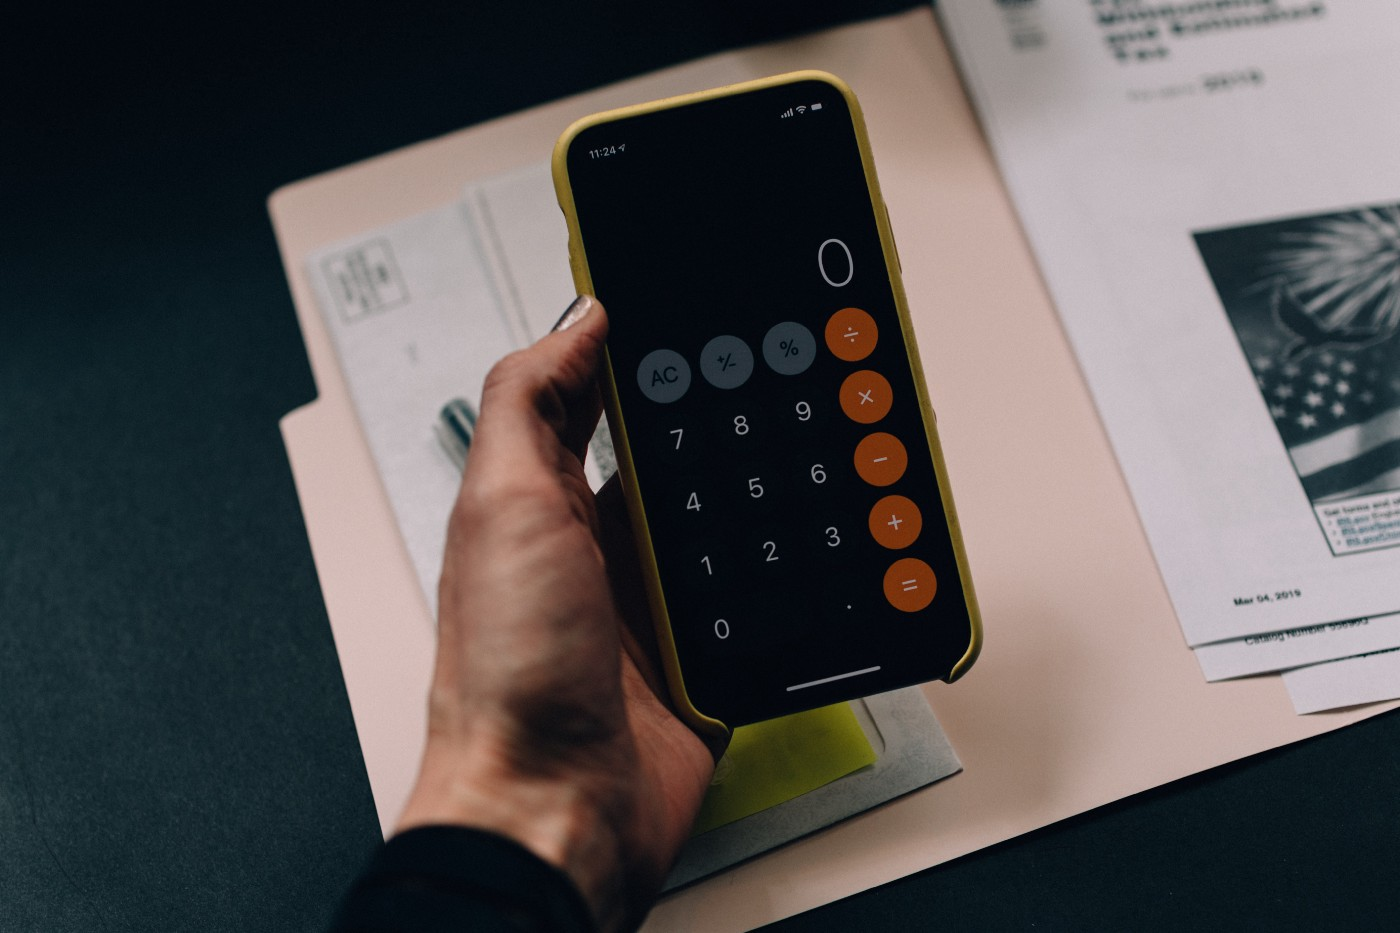 Hand holding Android phone with calculator app running over manila file folder with papers